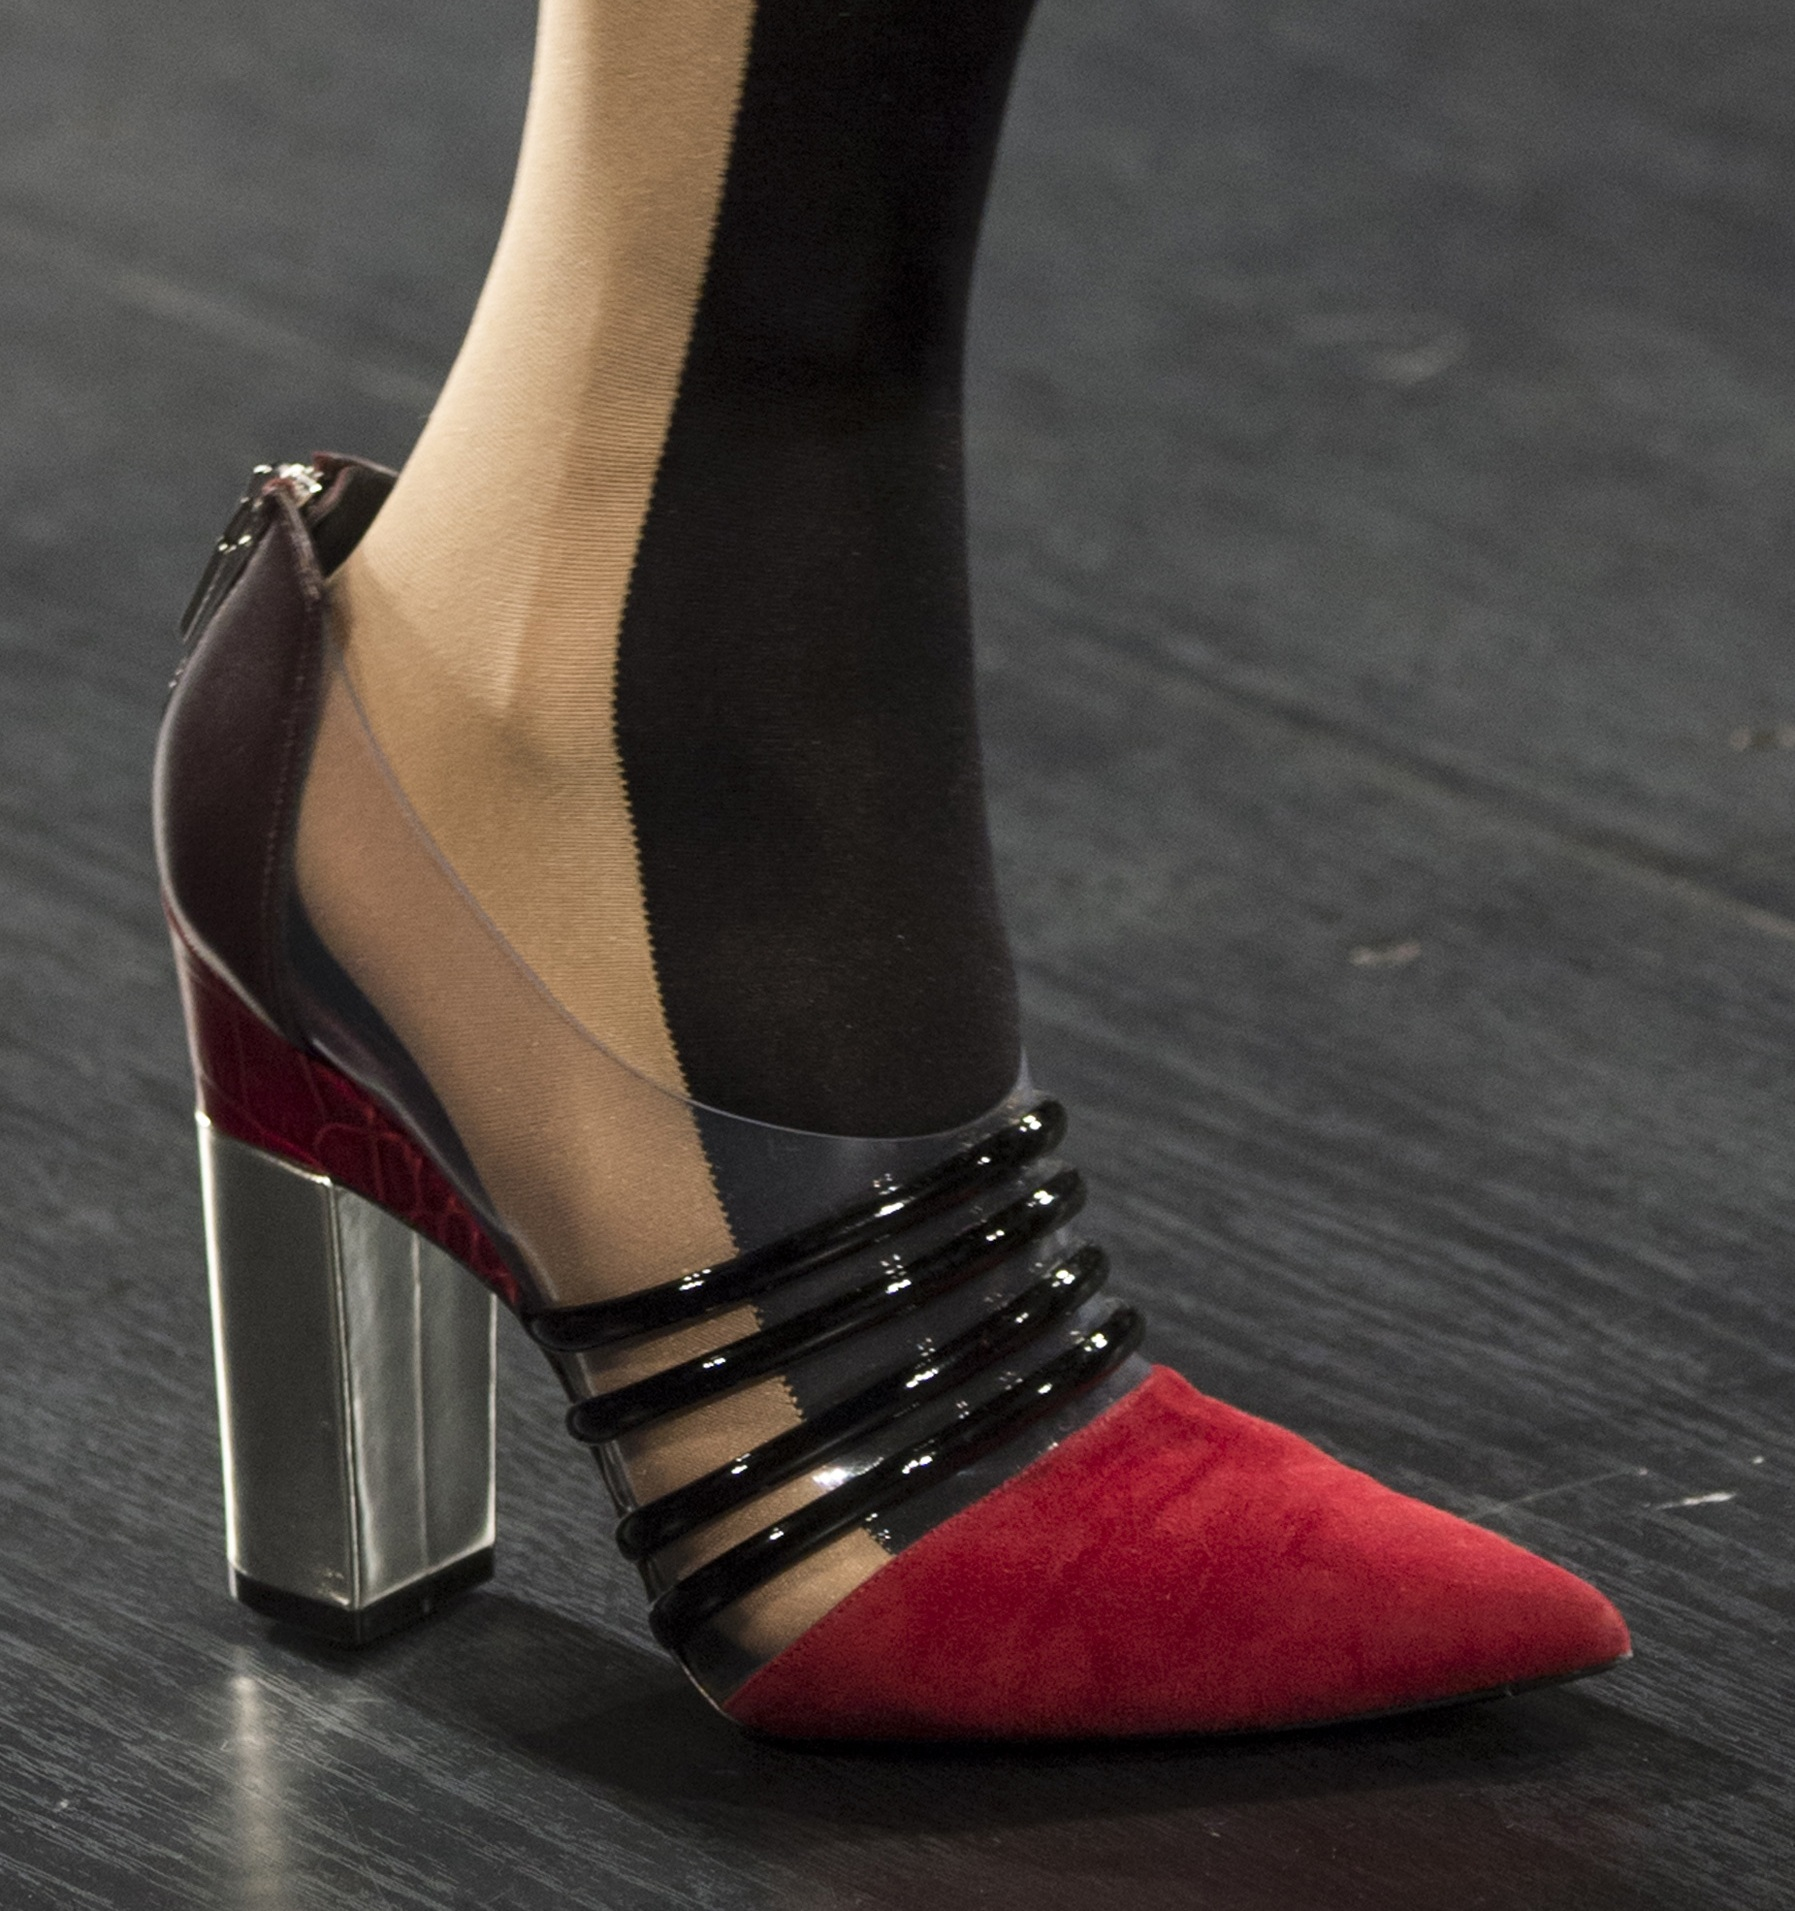 Flur-Magazine-best-shoes-fw17-prabal-gurung-clp-rf17-4489